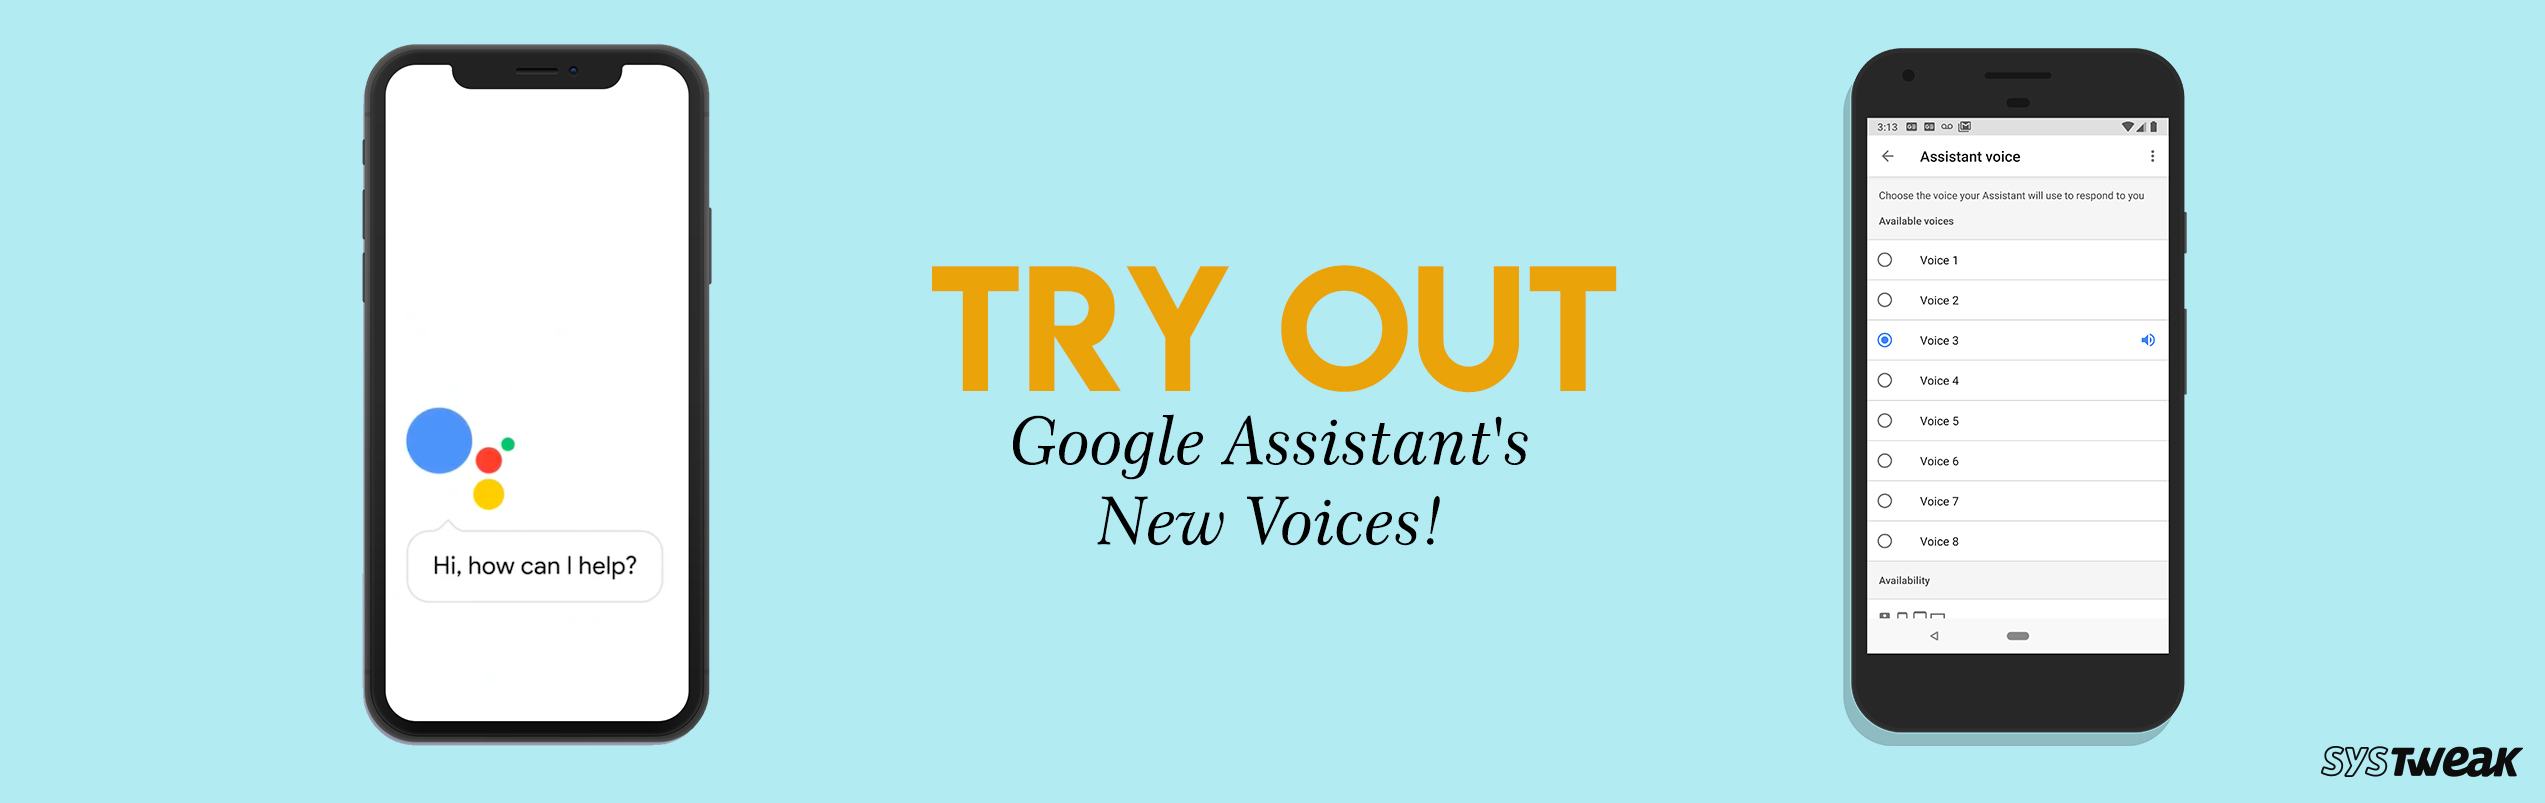 How To Change The Google Assistant Voice On Your Phone (Android/iOS)